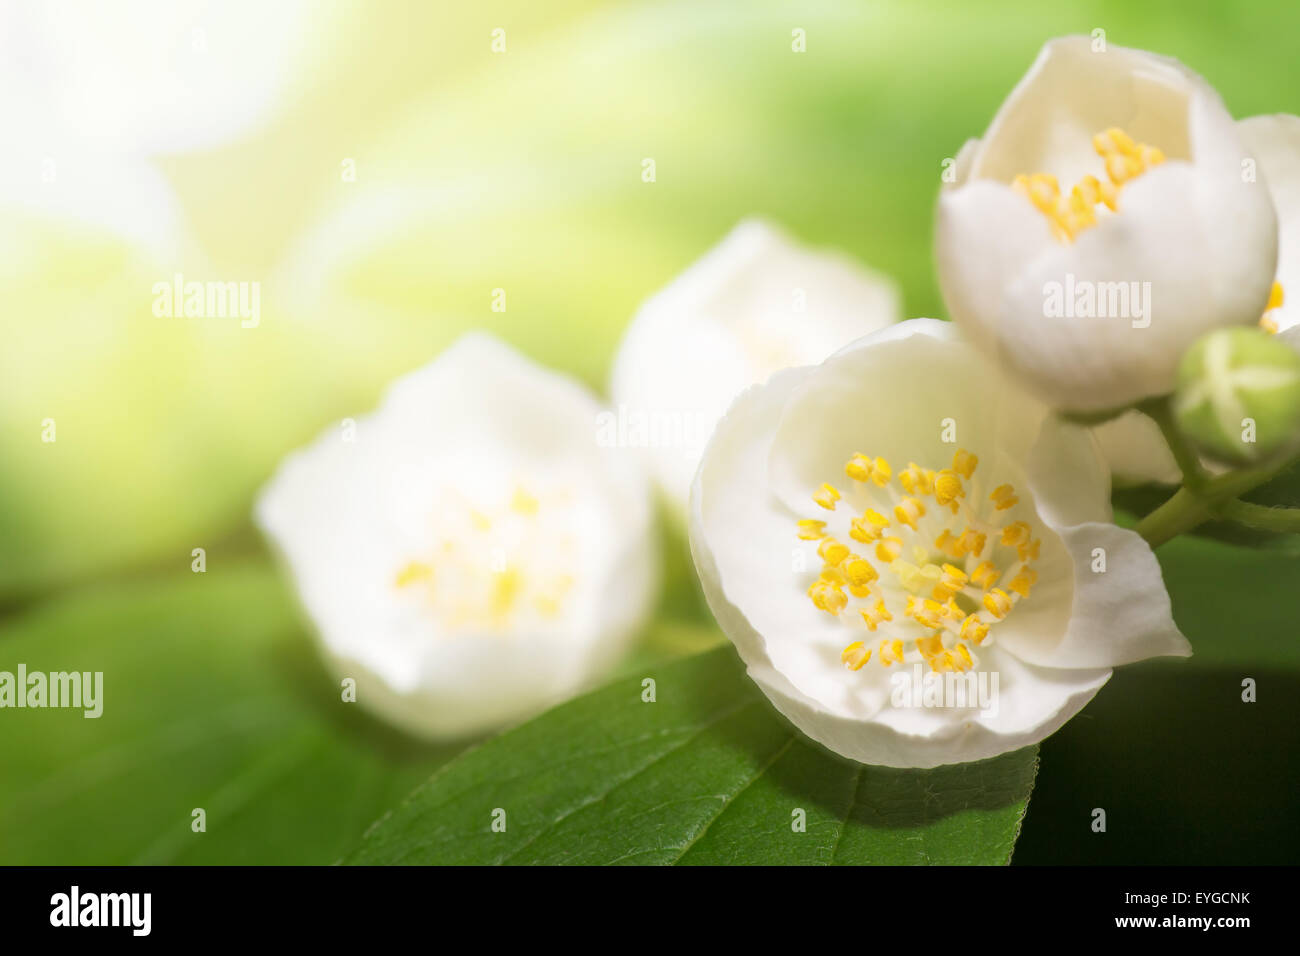 Leaves and flowers Jamin - Stock Image